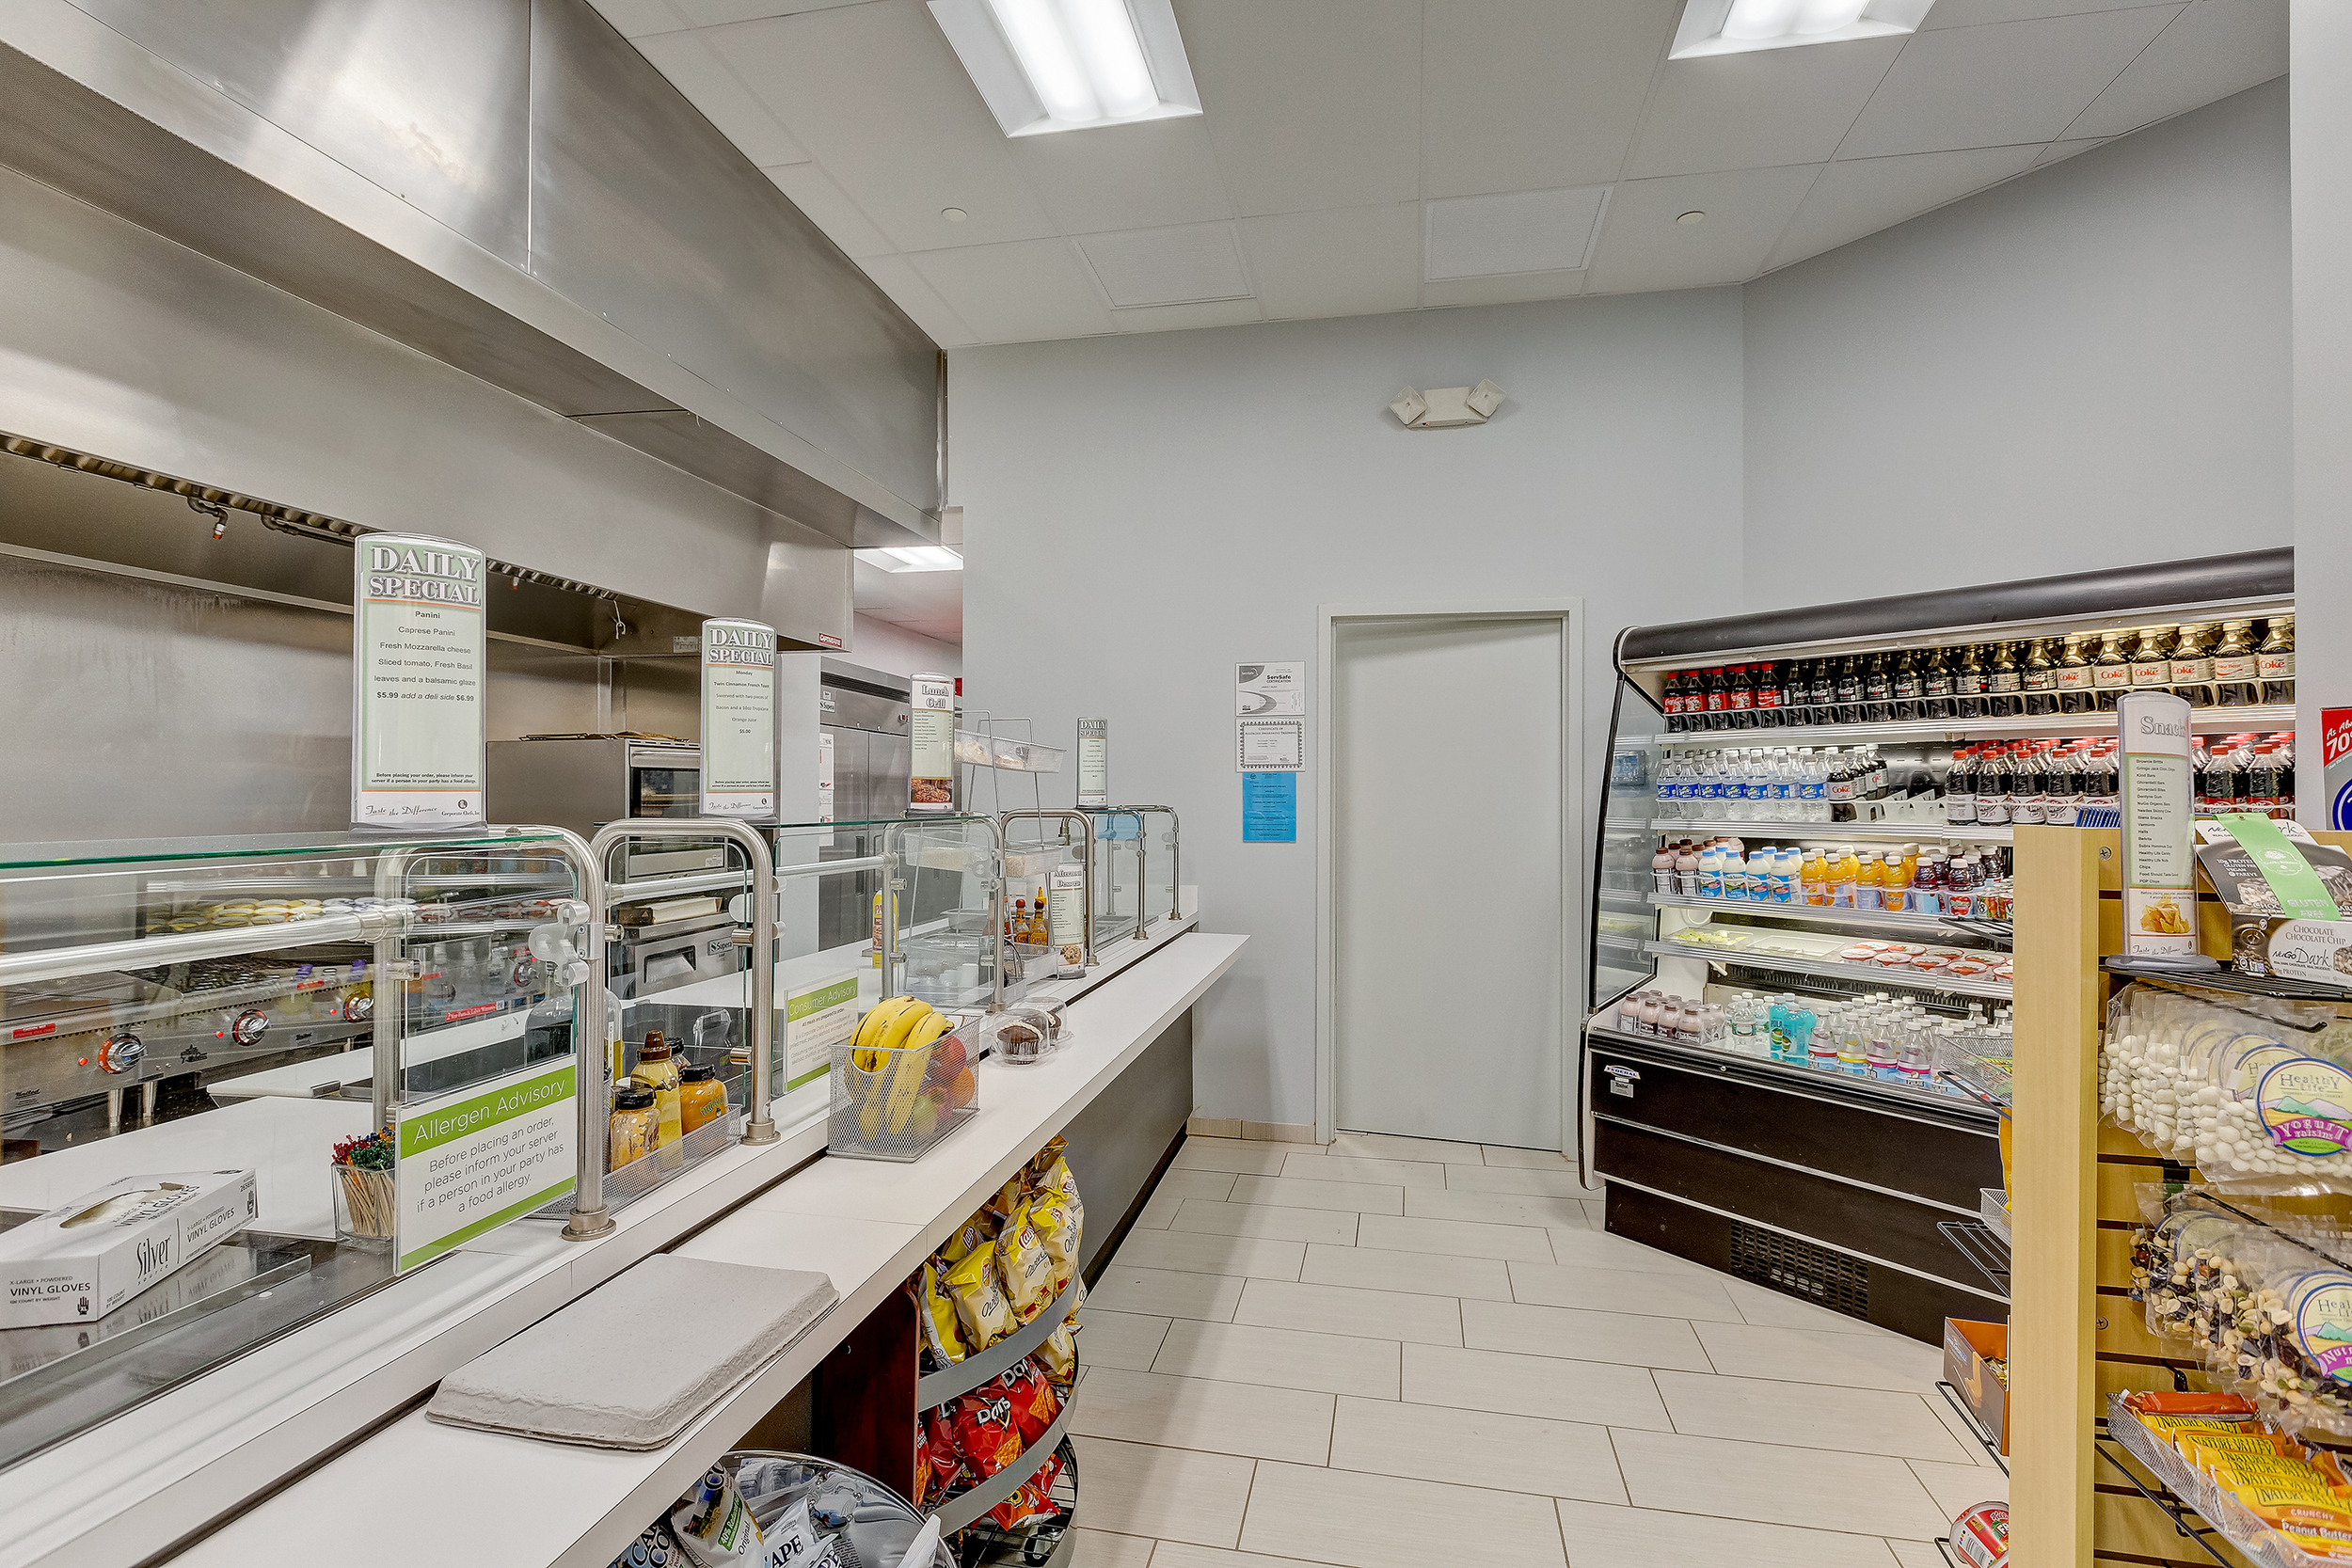 Renovated Café with new vendor, entirely new equipment and space to service the tenants at 1432 & 1440 Main